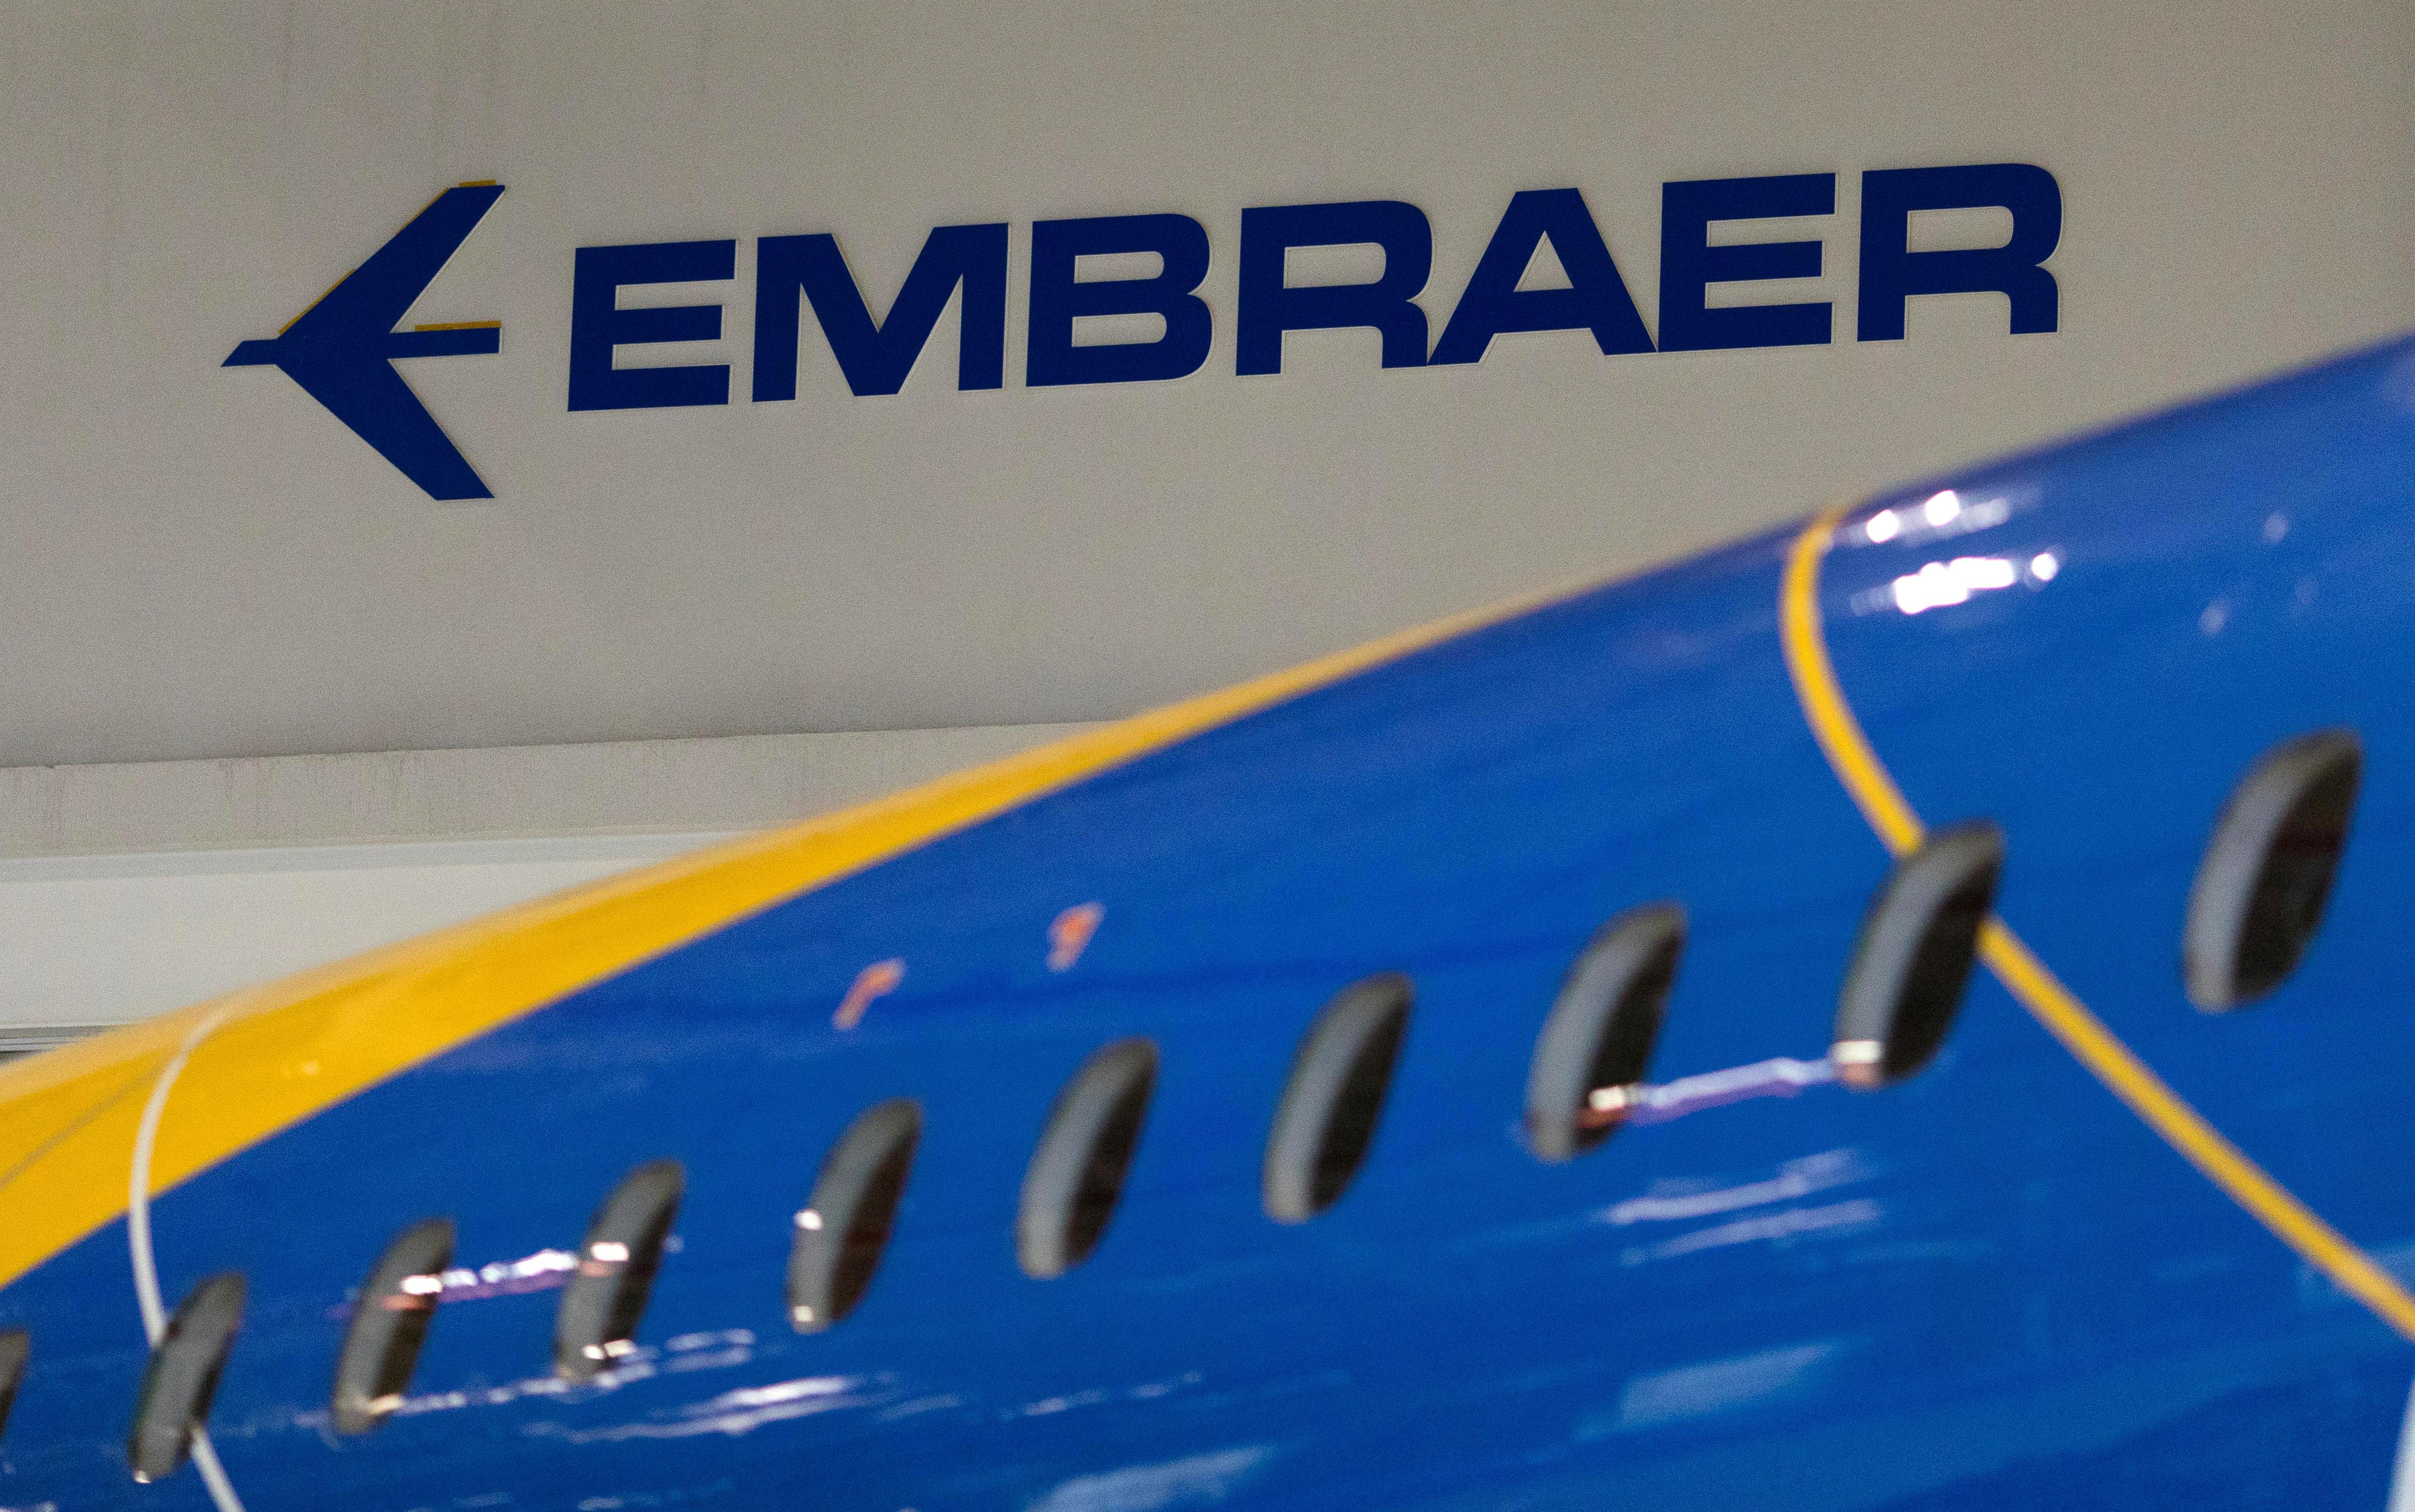 After betting its future on Boeing, jetmaker Embraer scrambles for elusive plan B 2